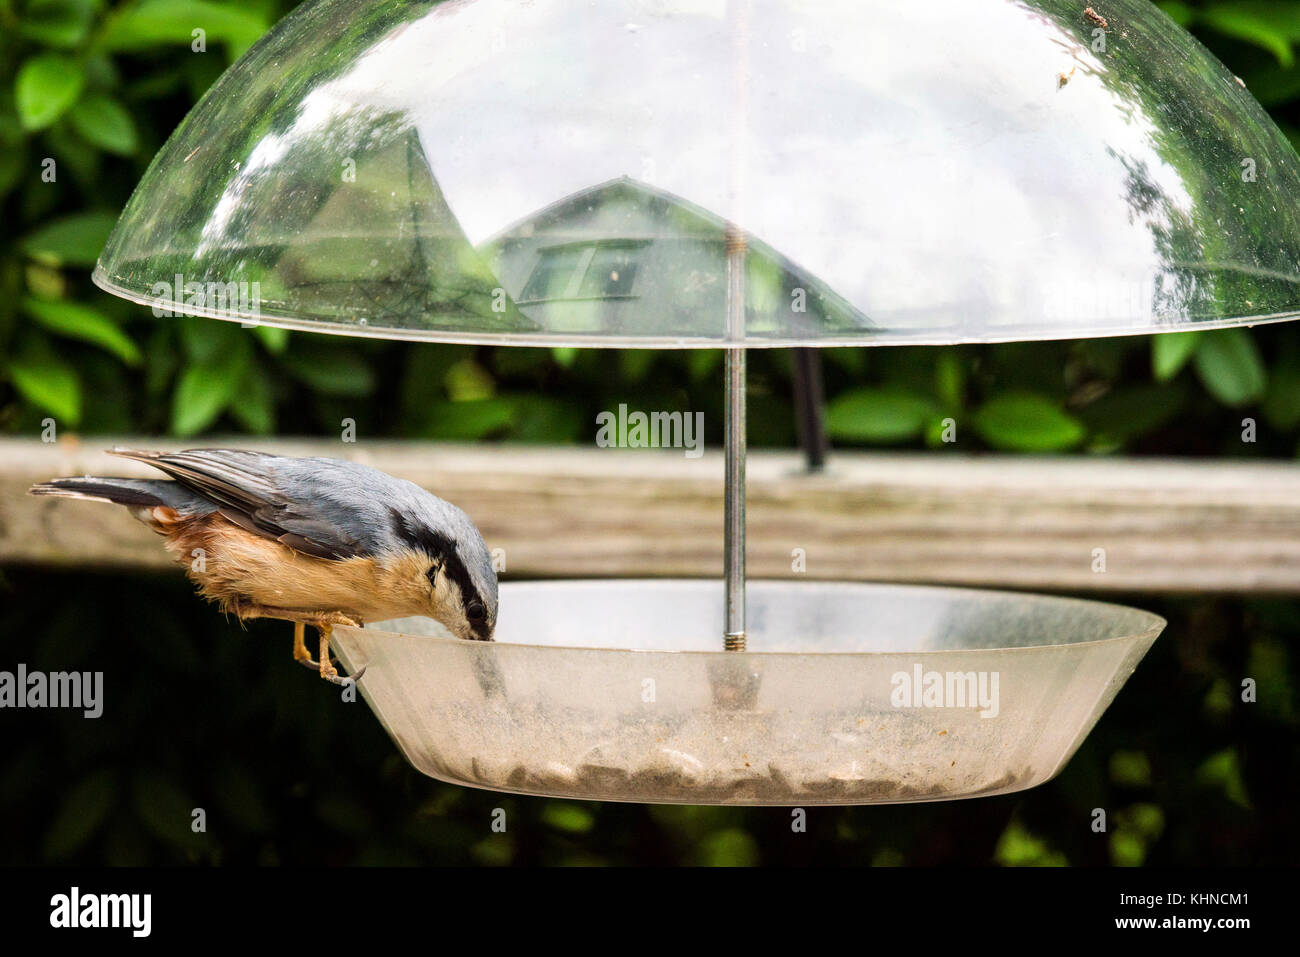 Nuthatch bird on a feeding board with seeds in a garden in the summer - Stock Image